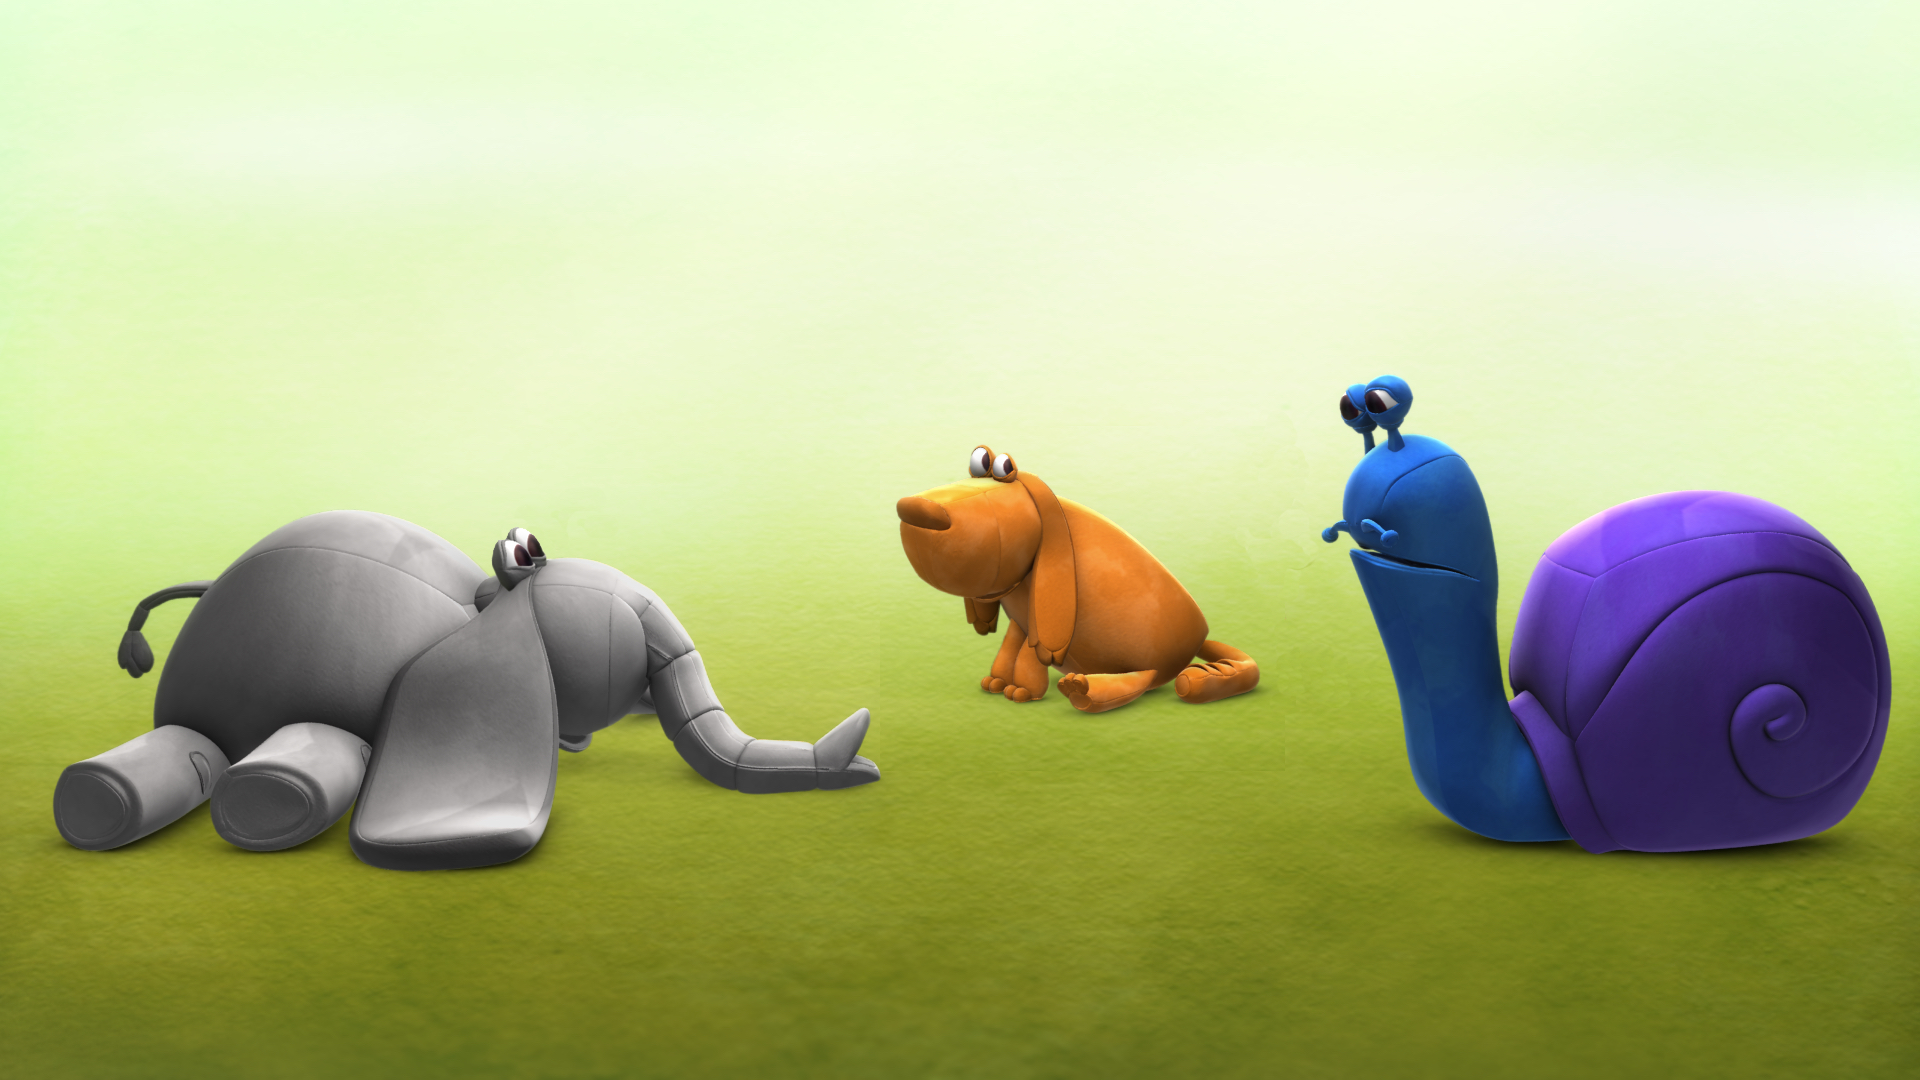 IKET_ELEFANT_Still_05